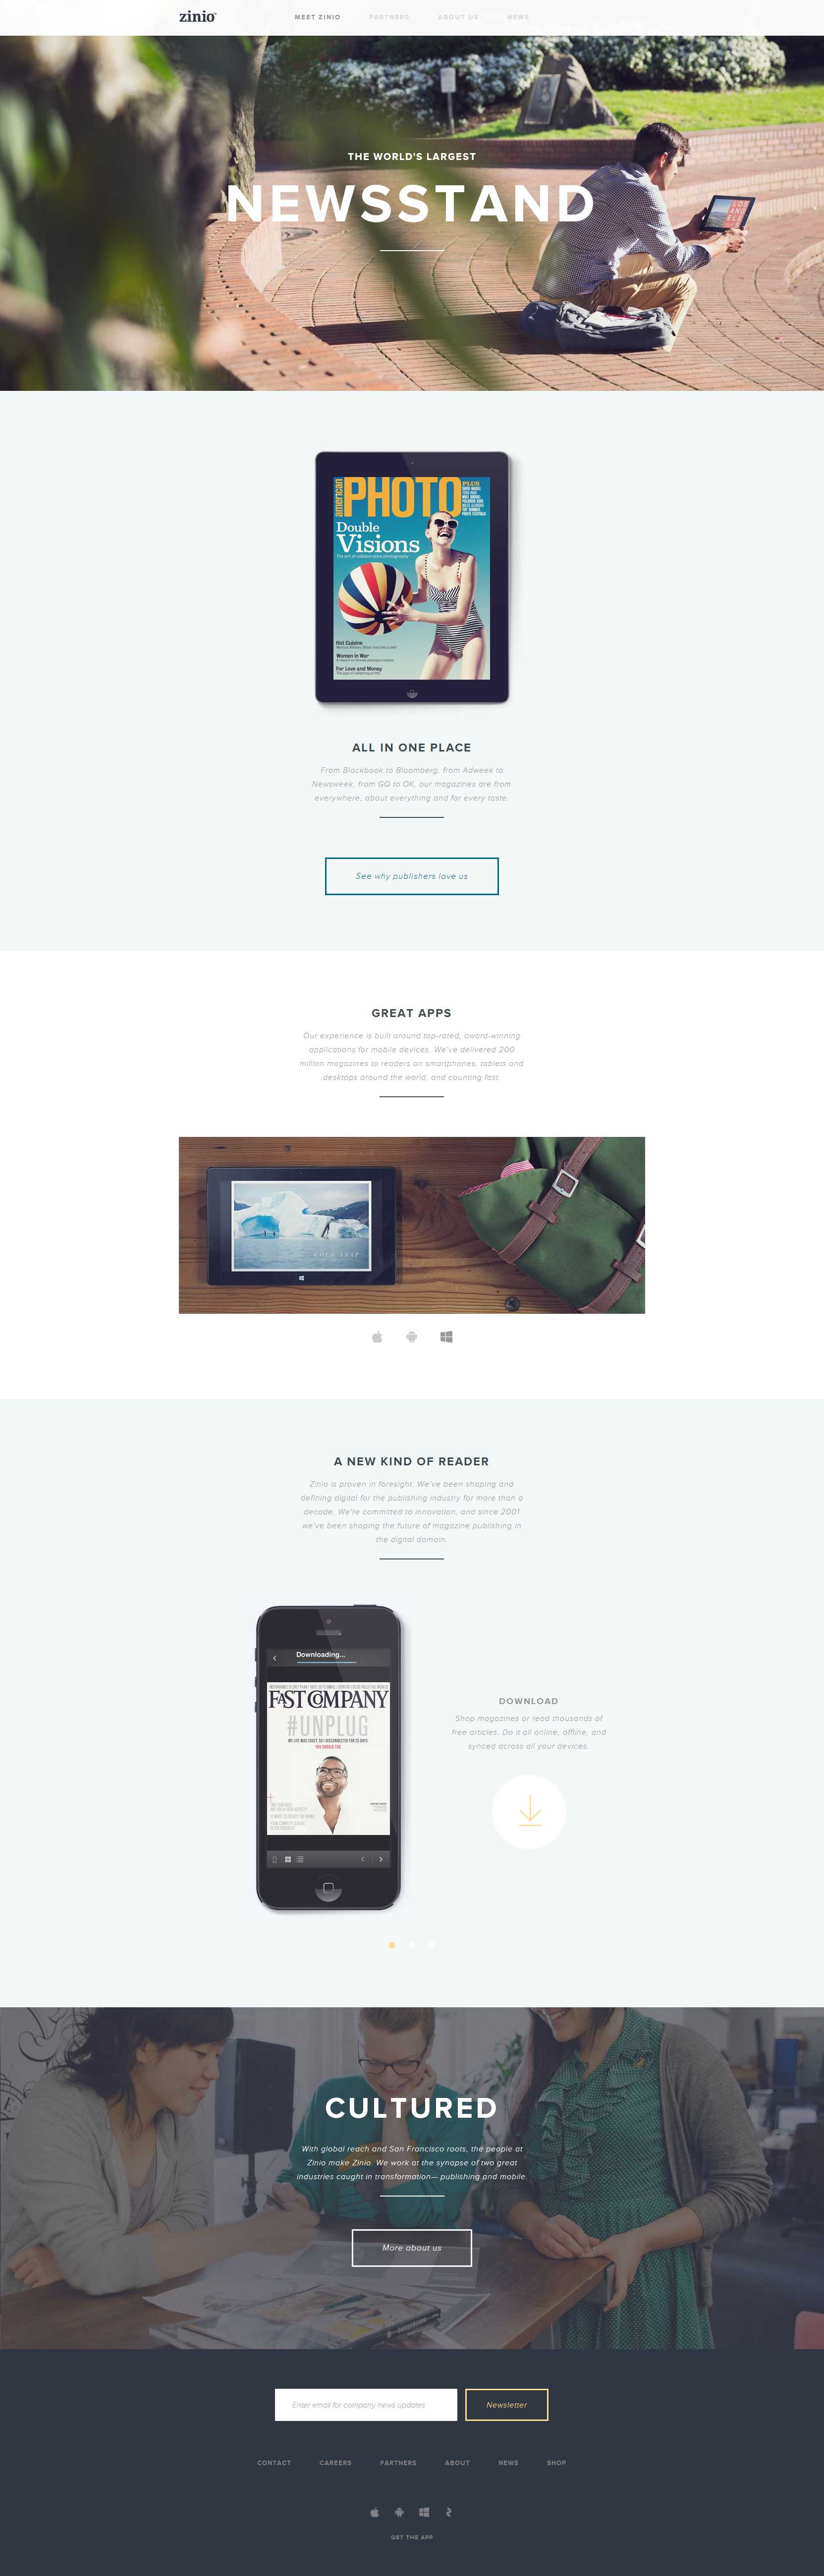 Zinio - Clean Website for Your Inspiration